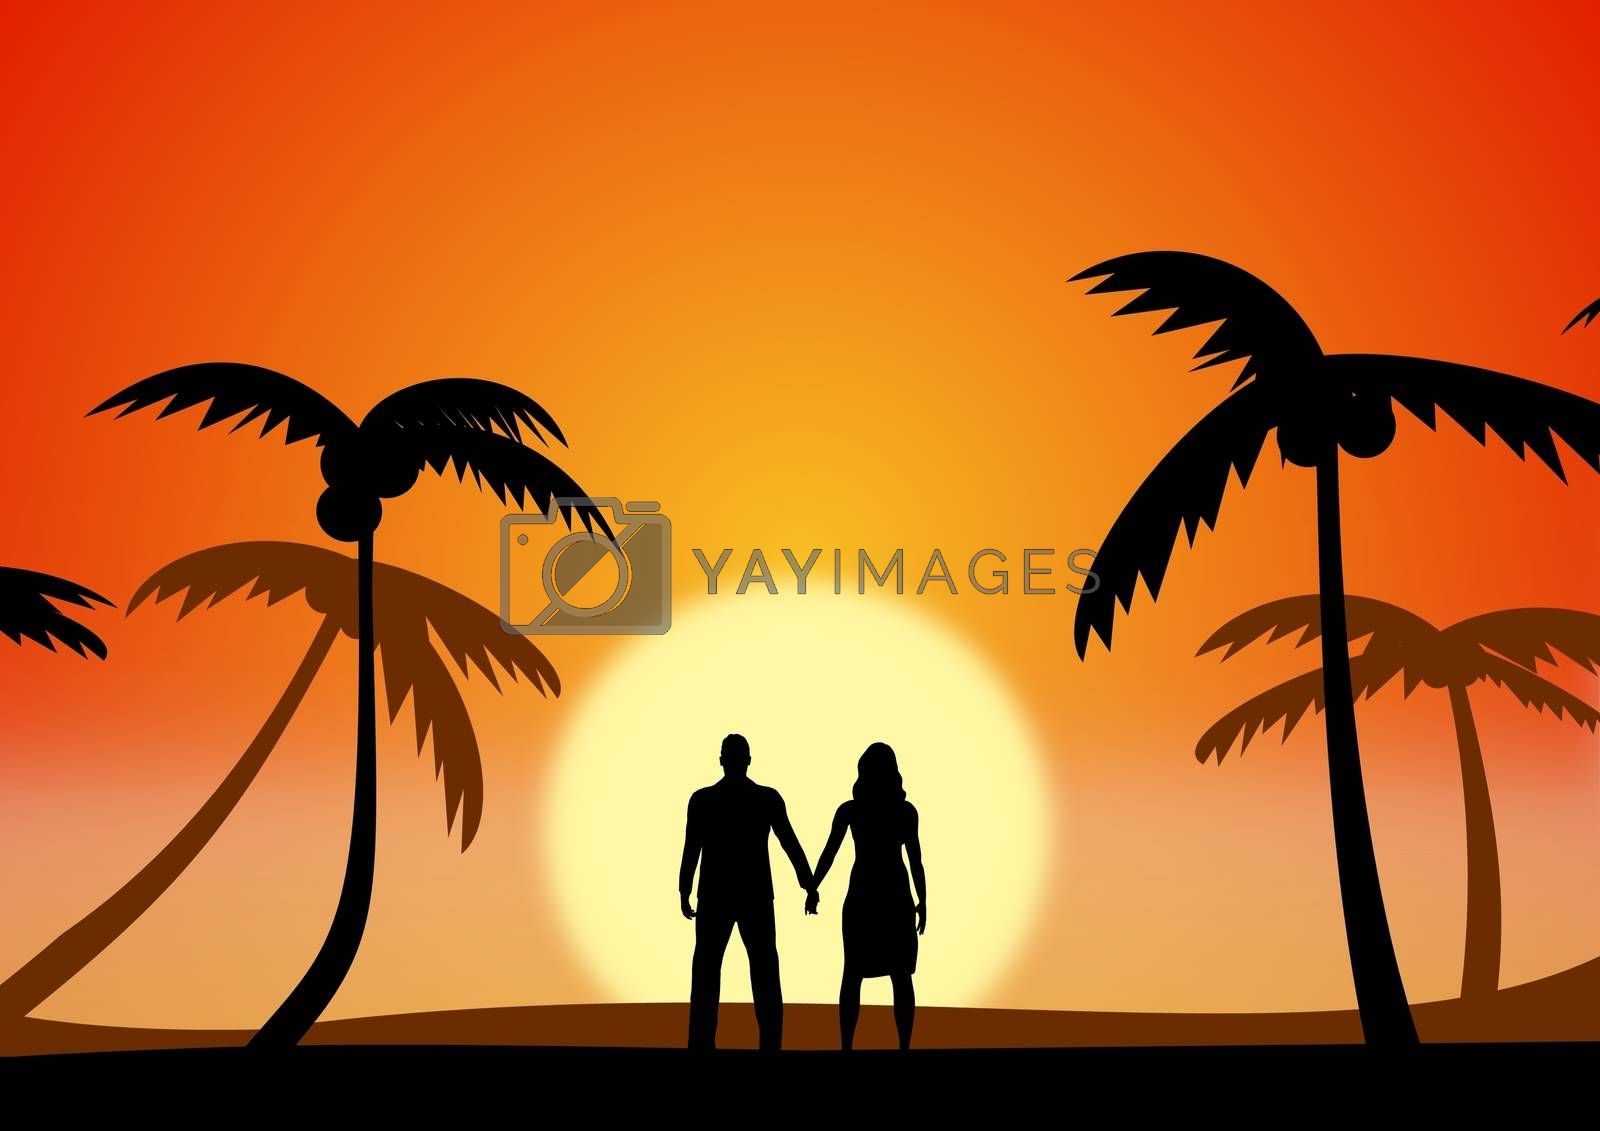 Illustration of a couple on holiday